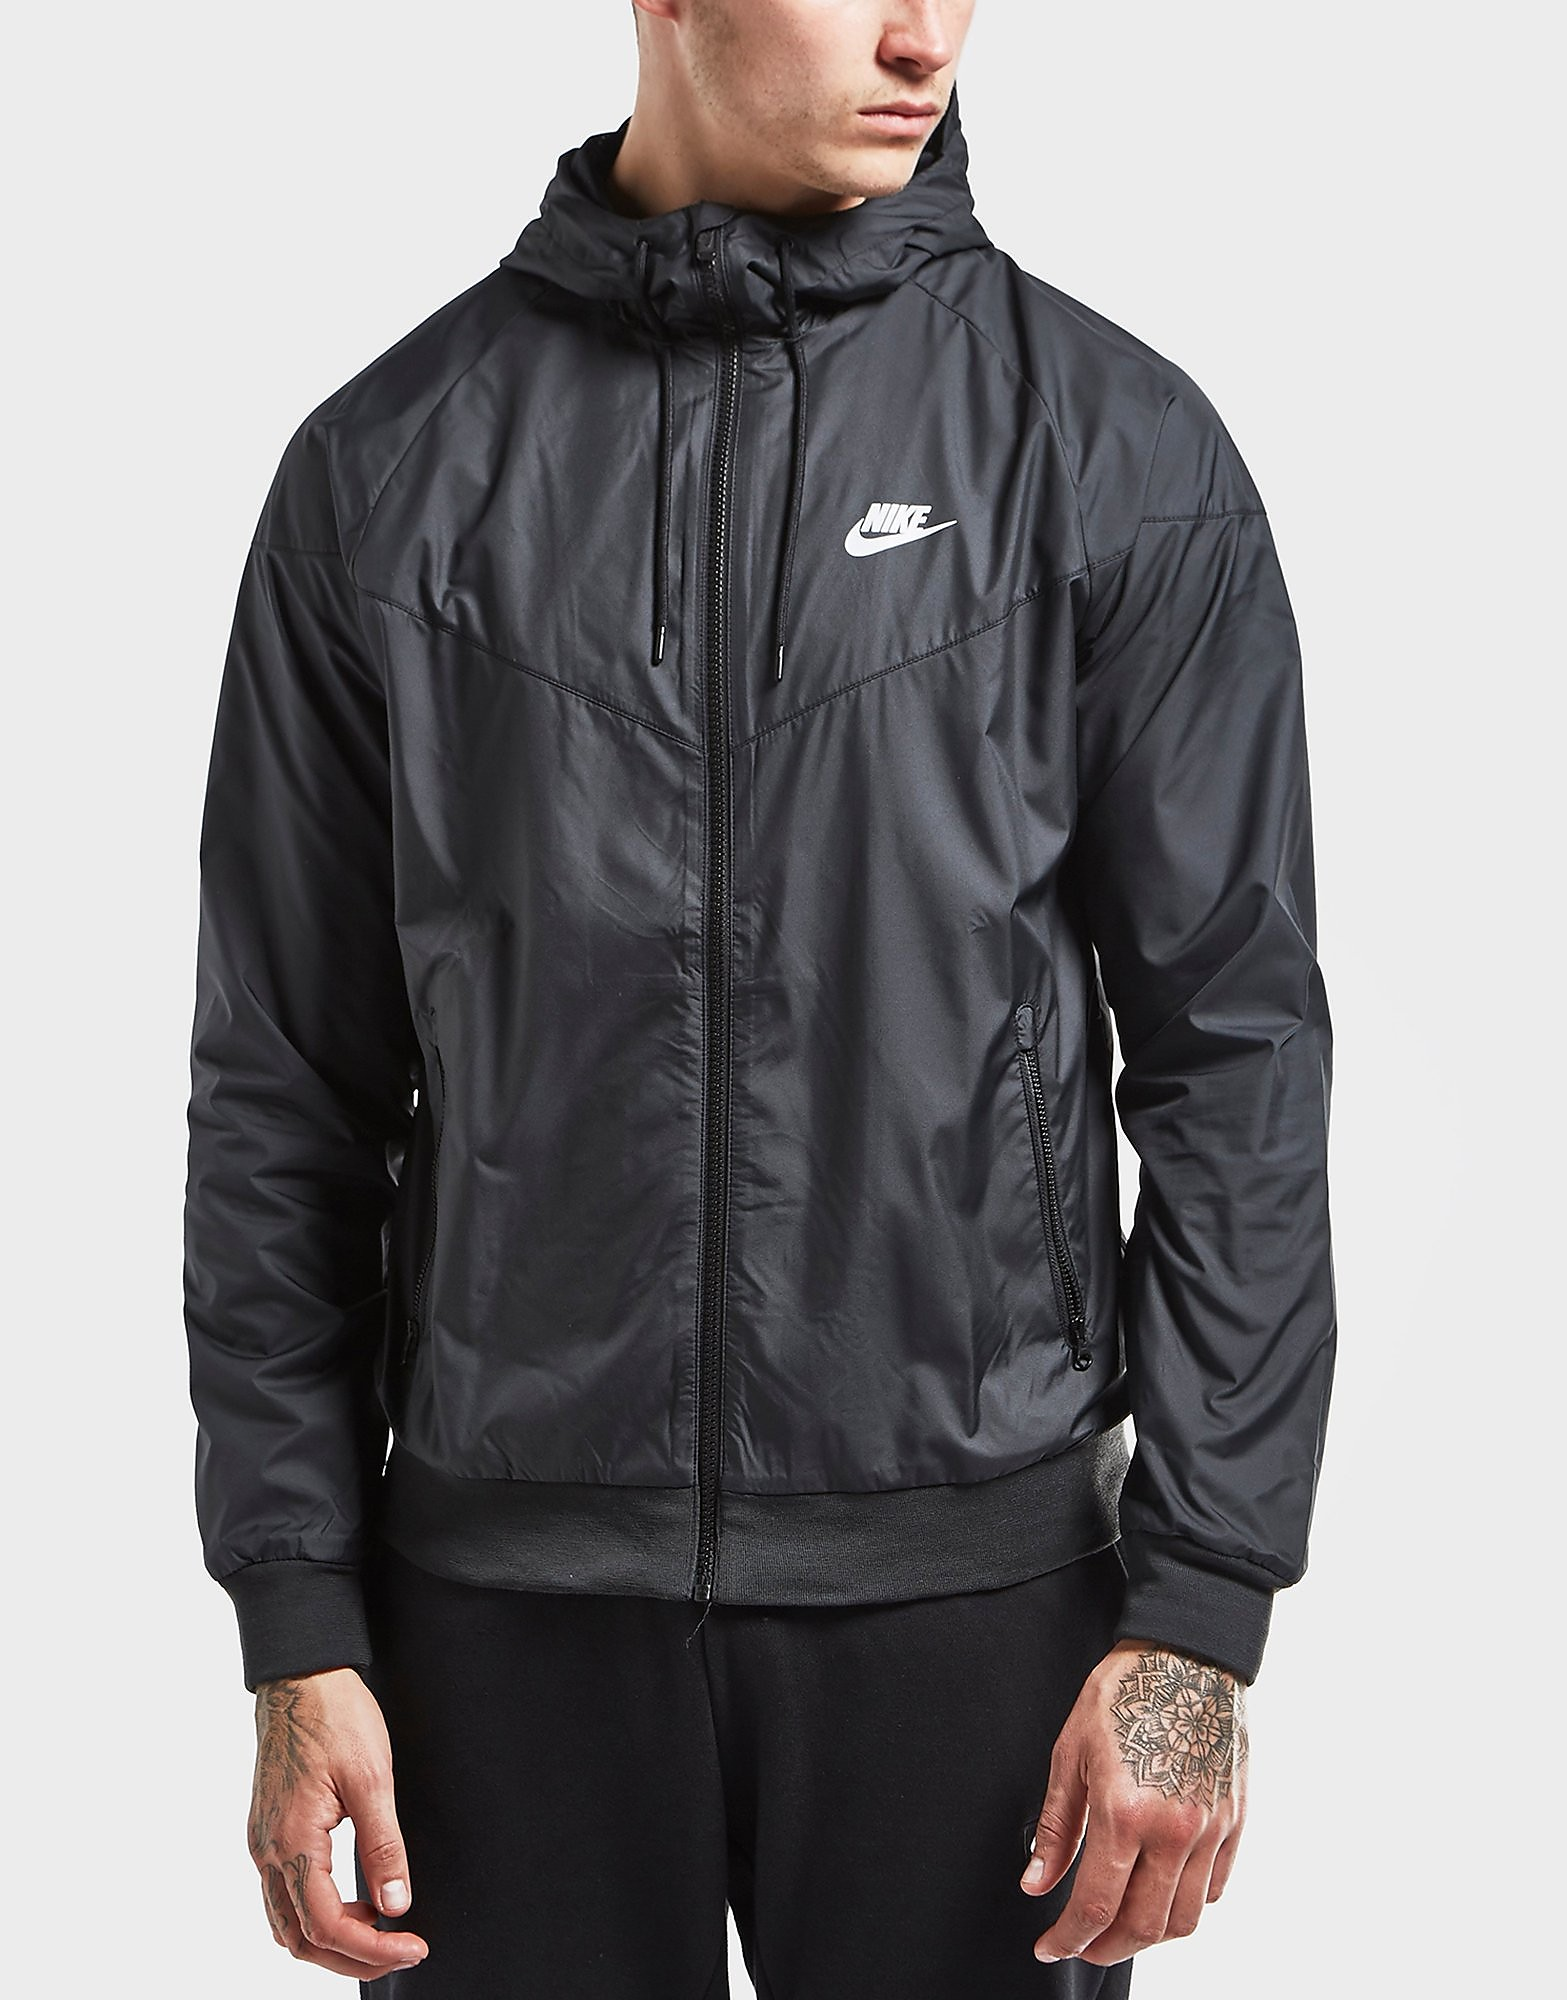 Nike Wind Runner Lightweight Jacket